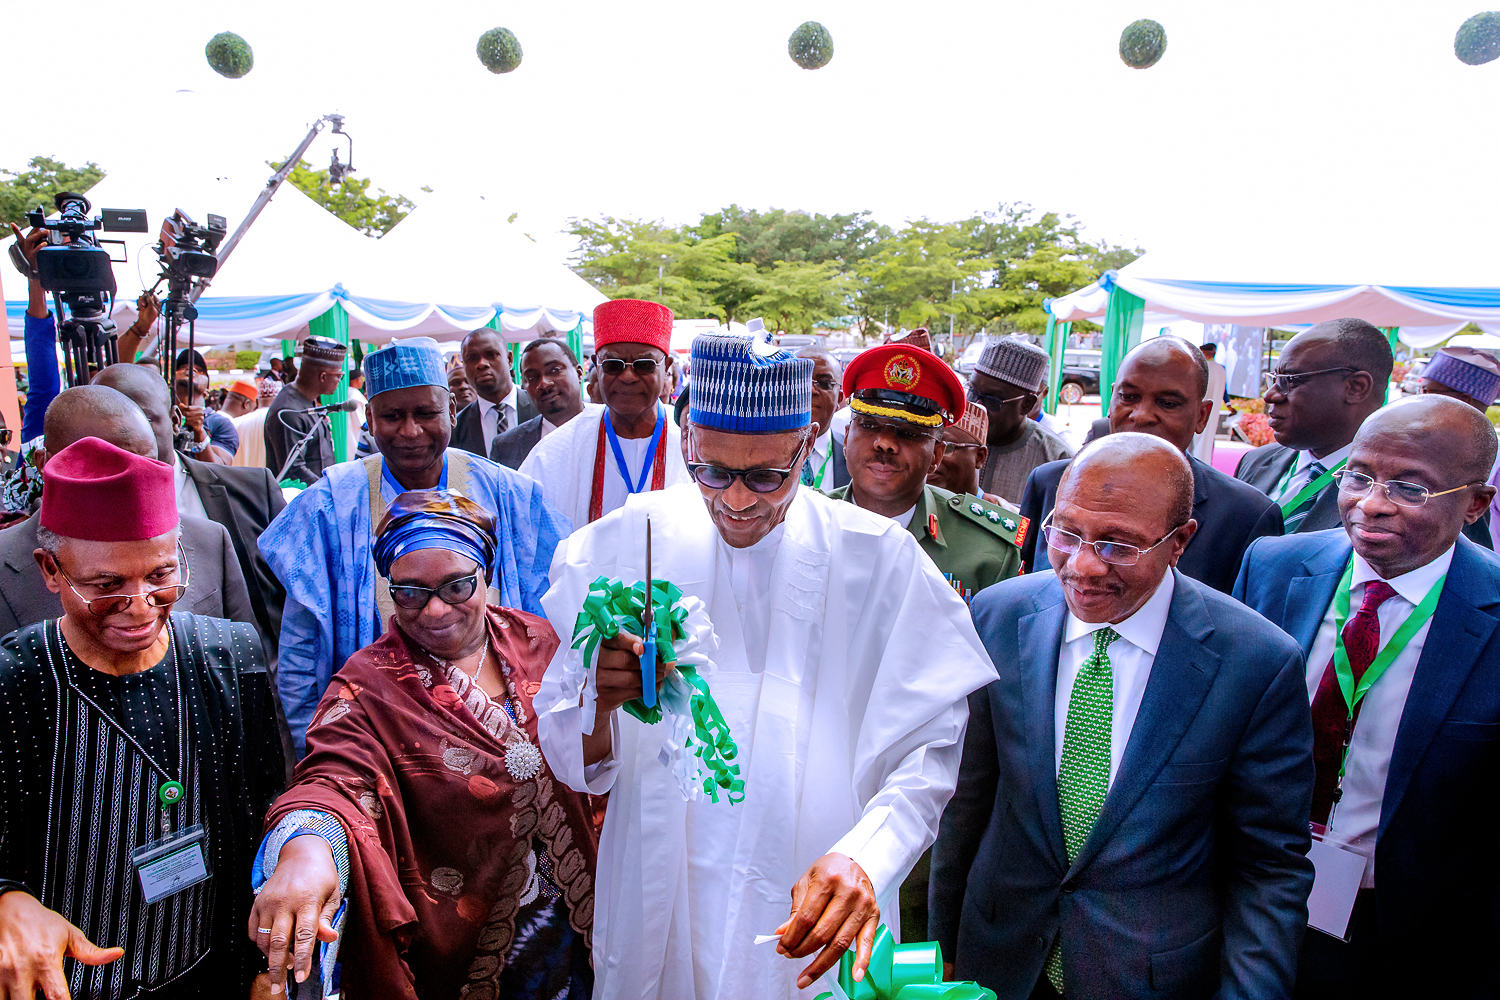 In Zaria - Buhari Opens CBN 'Centre of Excellence' - alltechng